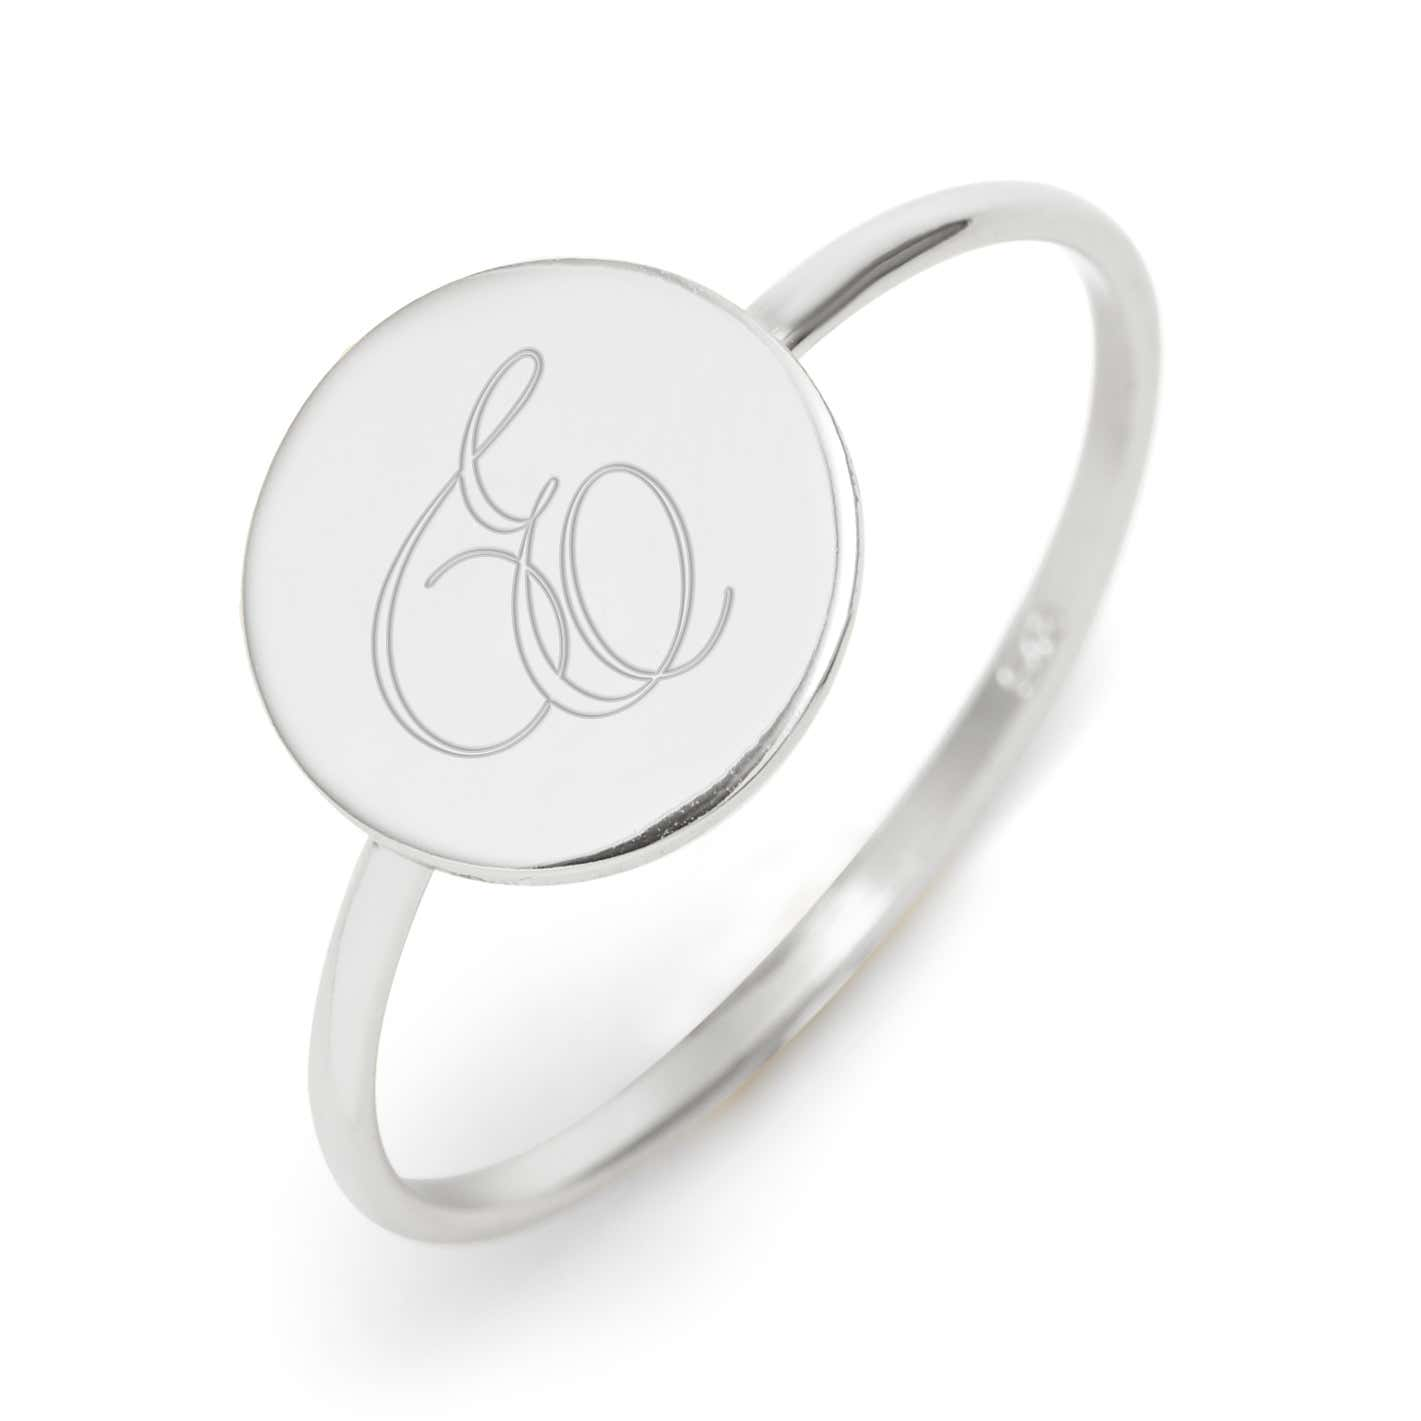 2abf7df39 Round Signet Silver Initial Ring | Custom Initial Band